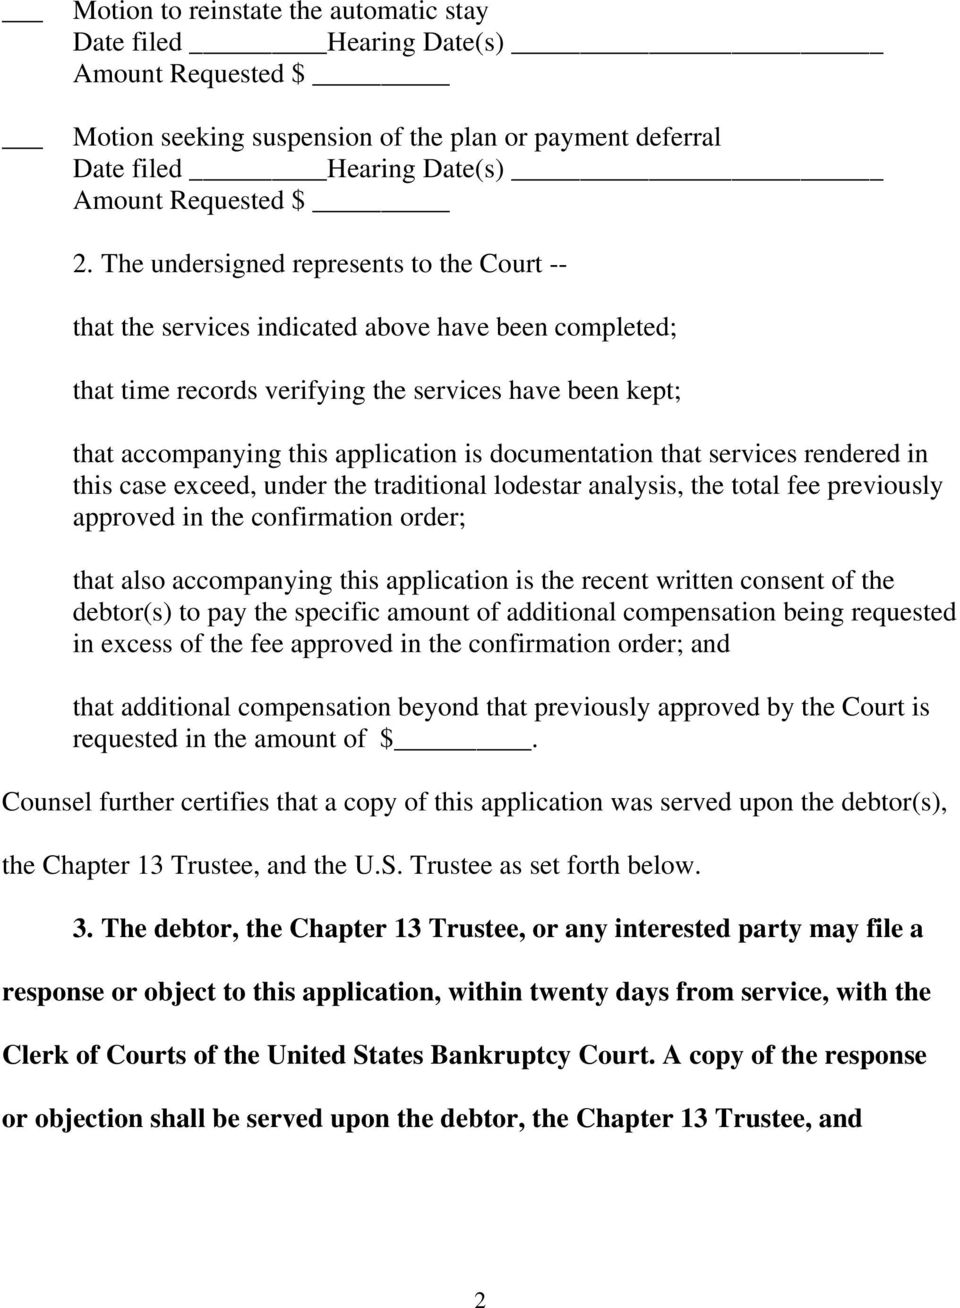 documentation that services rendered in this case exceed, under the traditional lodestar analysis, the total fee previously approved in the confirmation order; that also accompanying this application